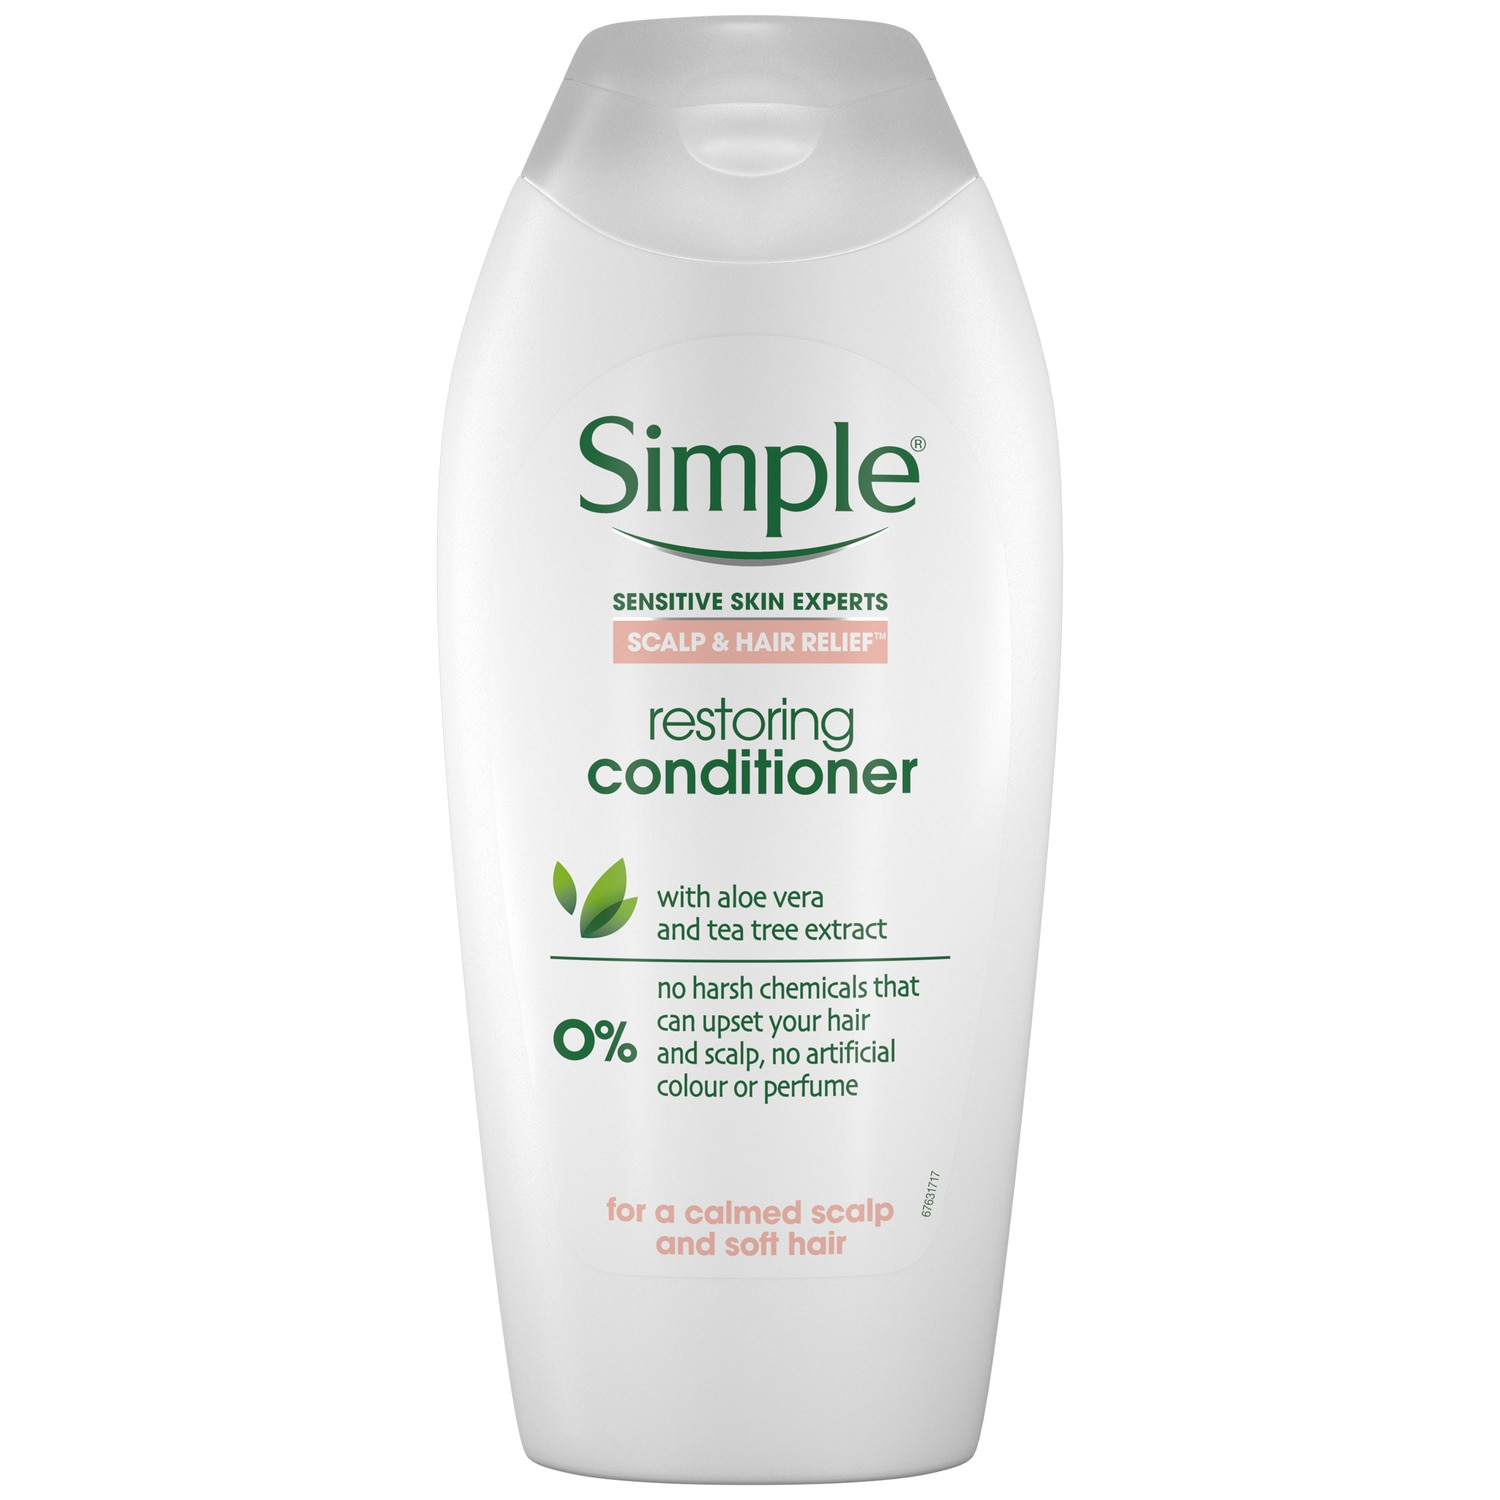 Simple Scalp & Hair Relief Restoring Conditioner